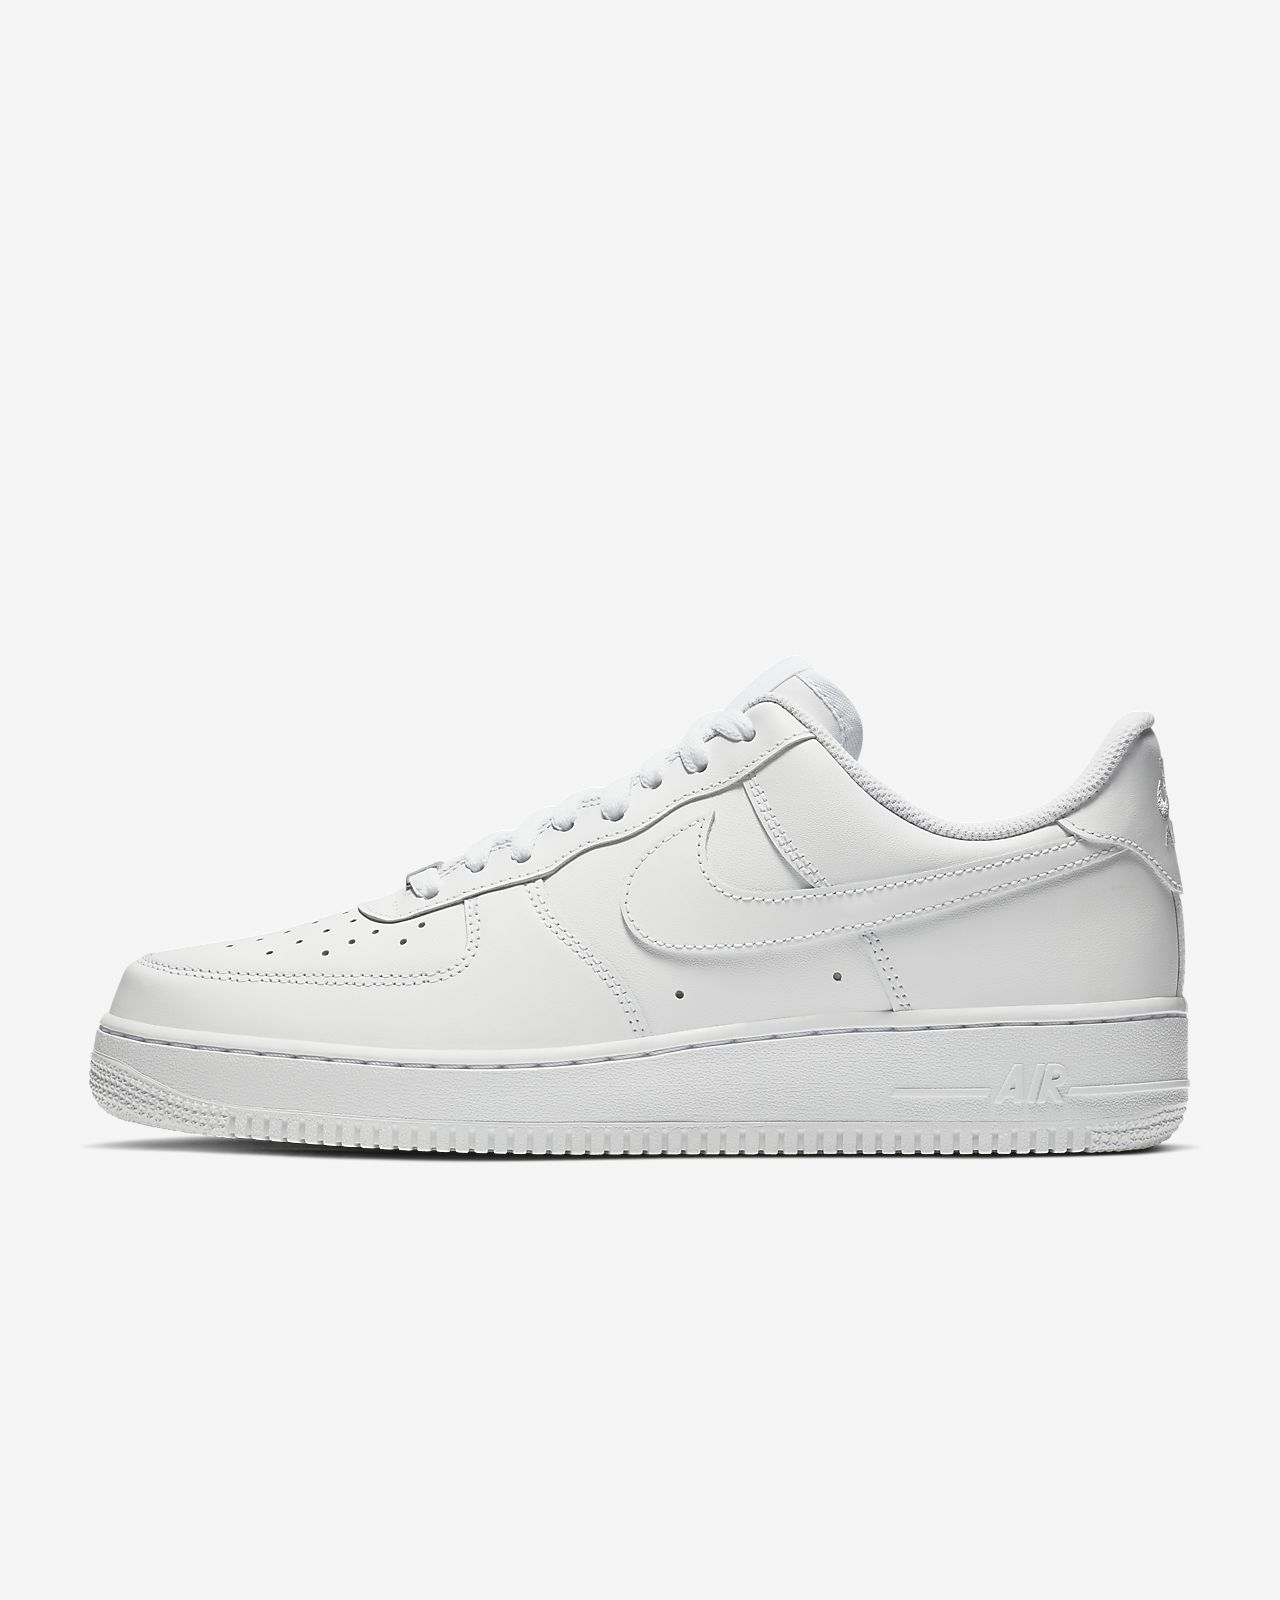 c116af0705 Nike Air Force 1 '07 Shoe. Nike.com